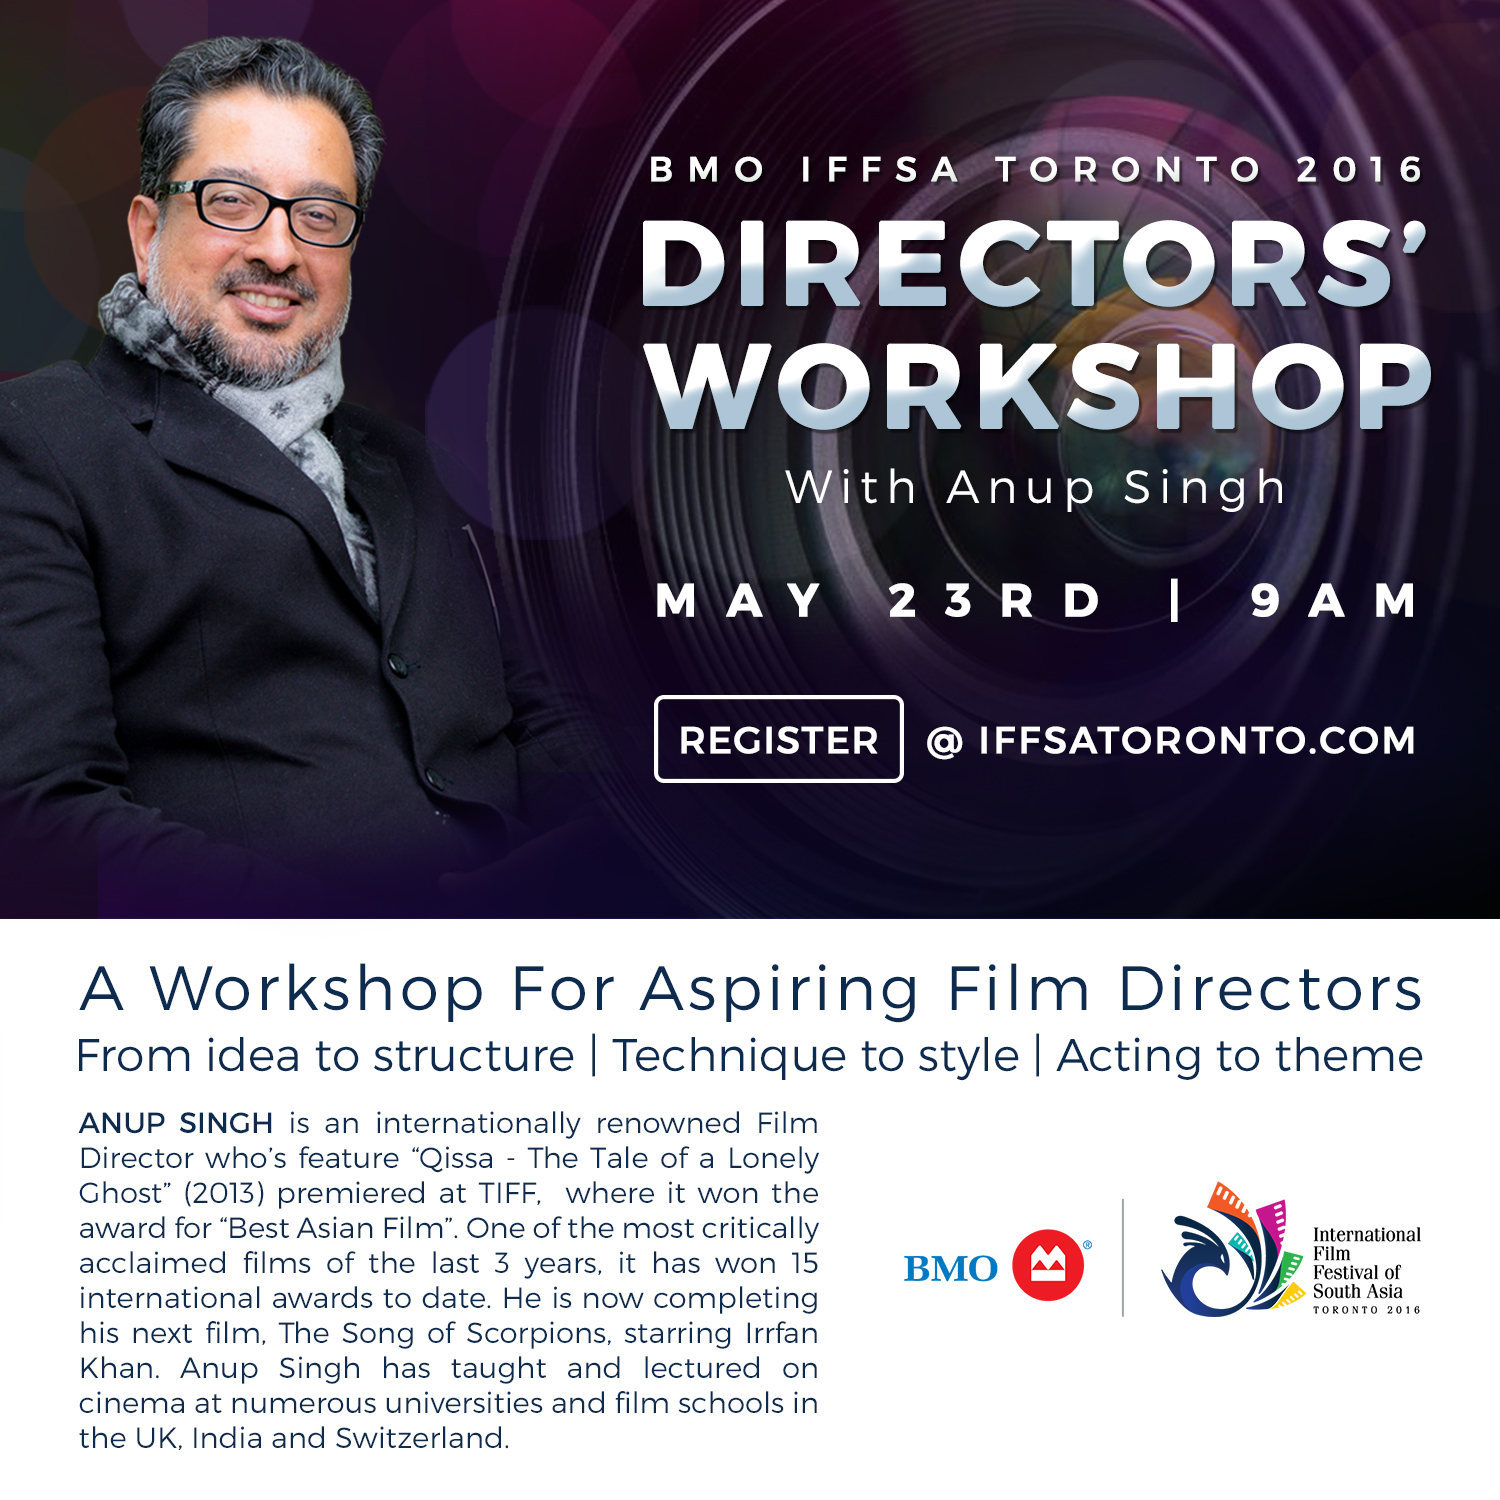 Director's Workshop